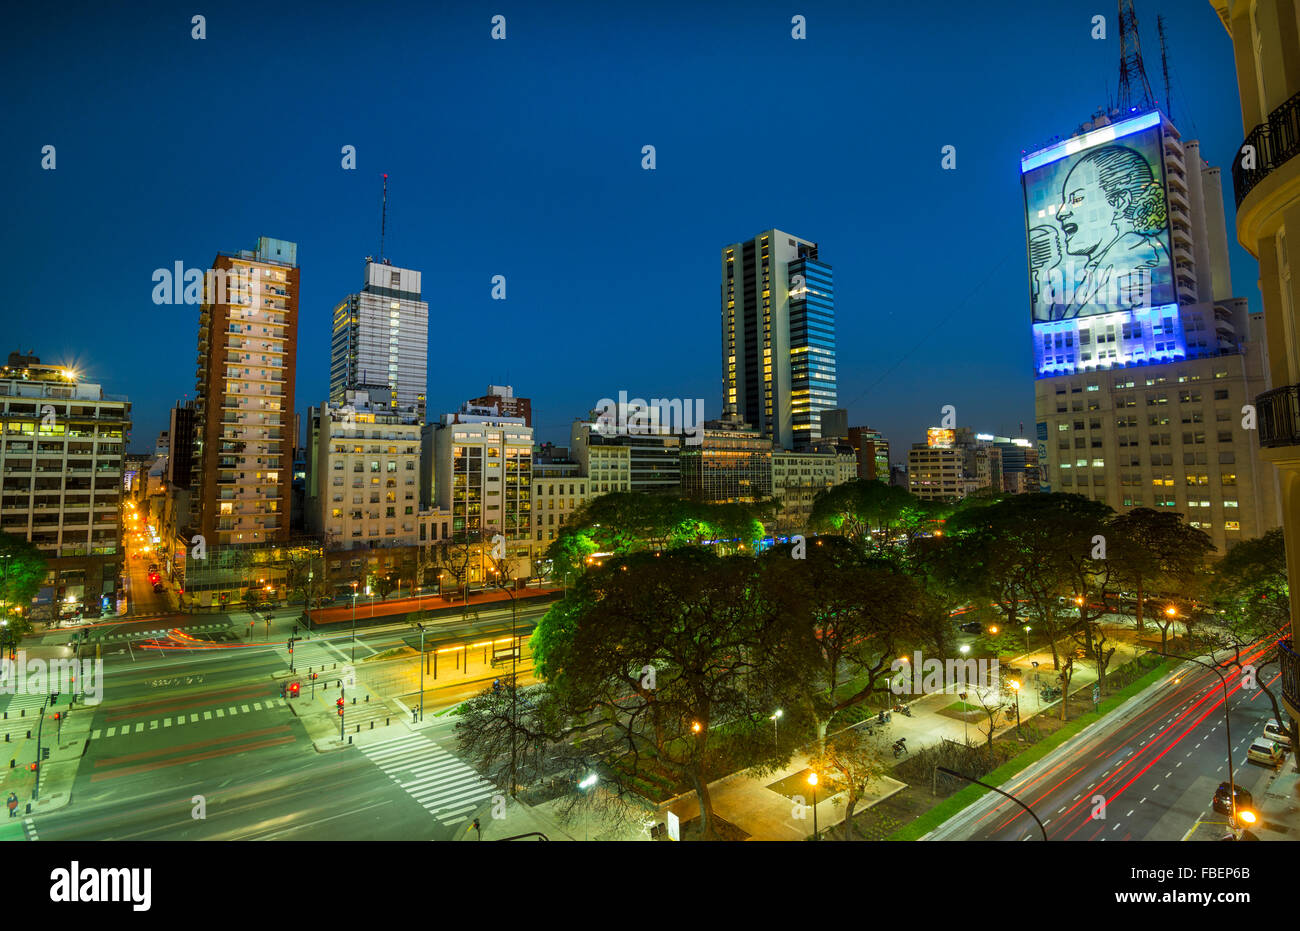 Buenos Aires Argentina 9 de Julio Avenue the widest street in the world with traffic at night twilight next to Lima - Stock Image